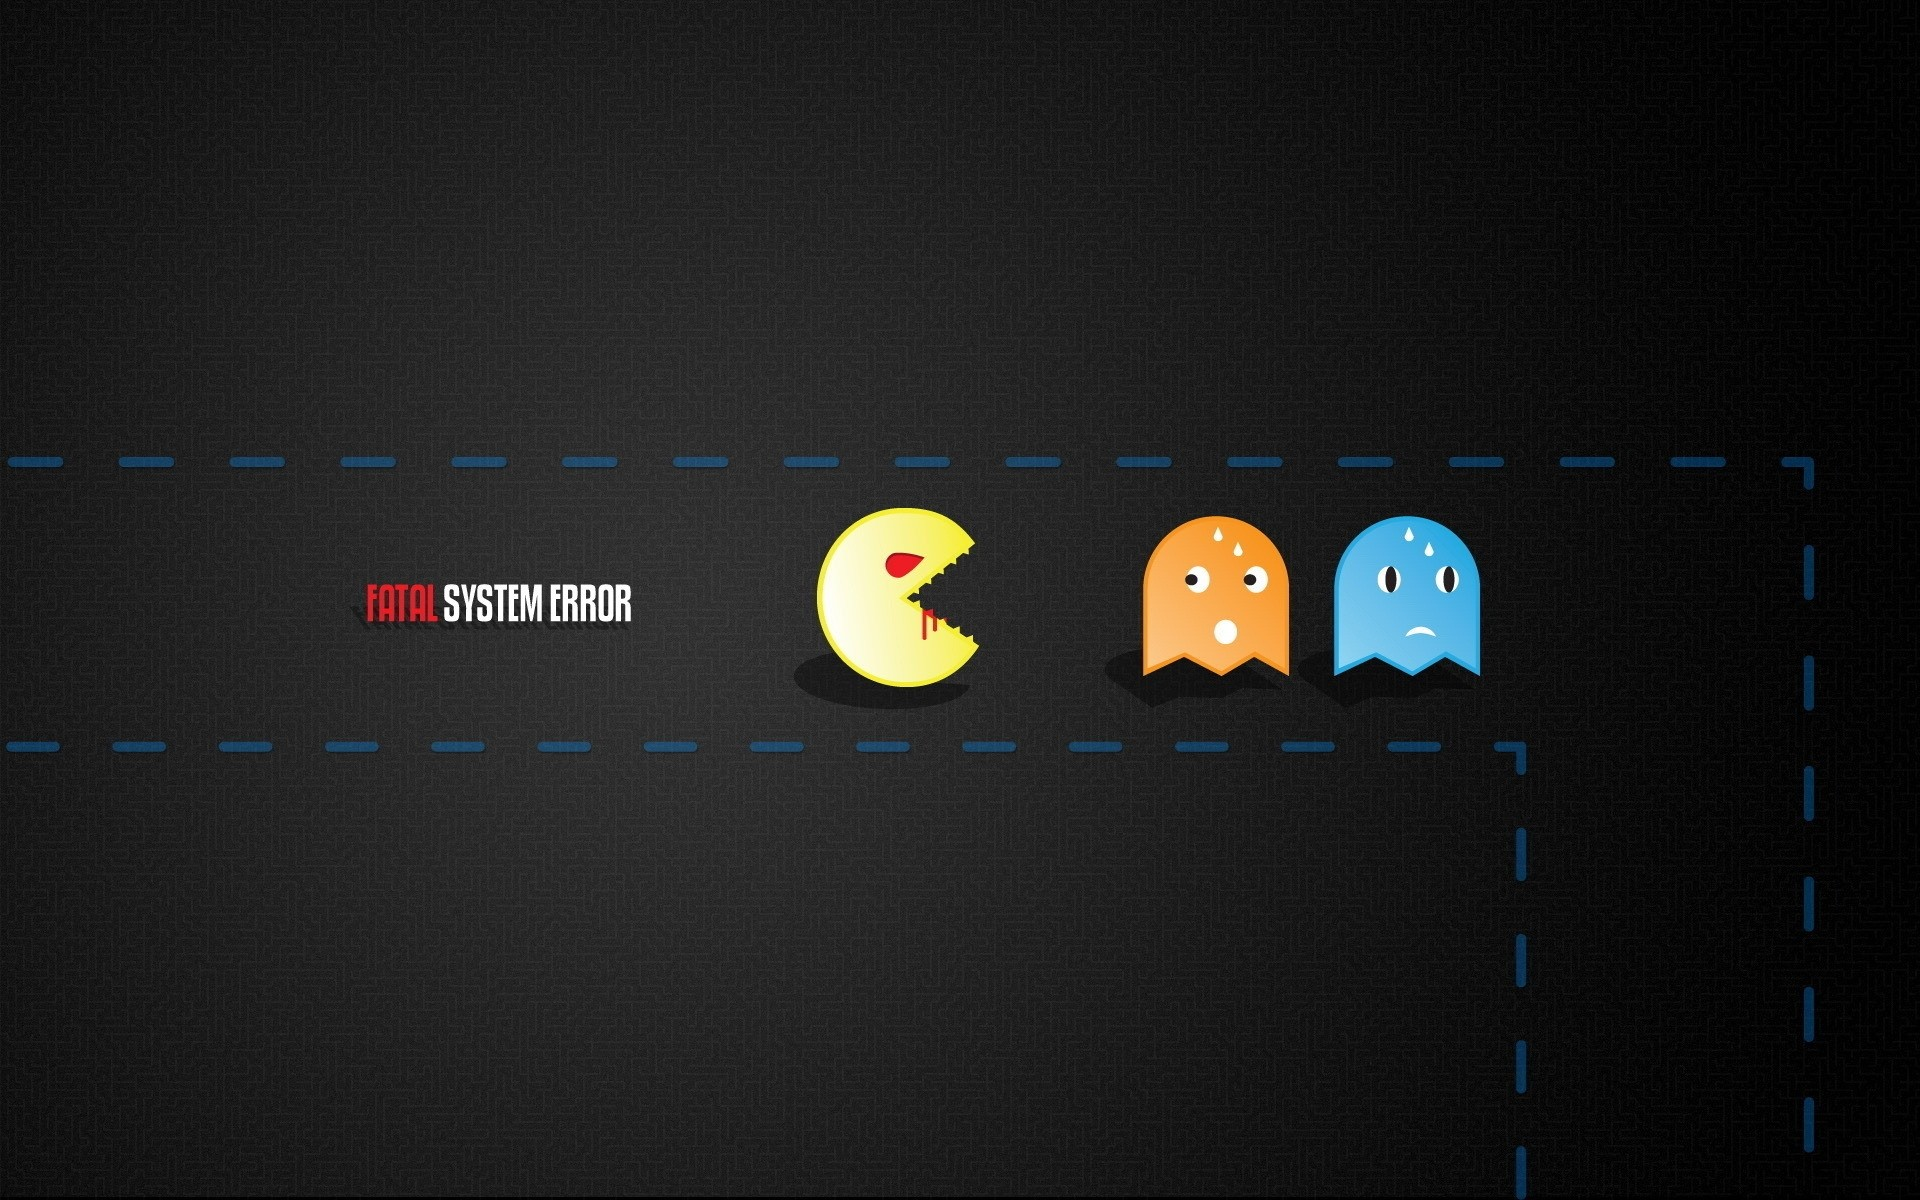 Pacman Flash Iphone Wallpapers For Free